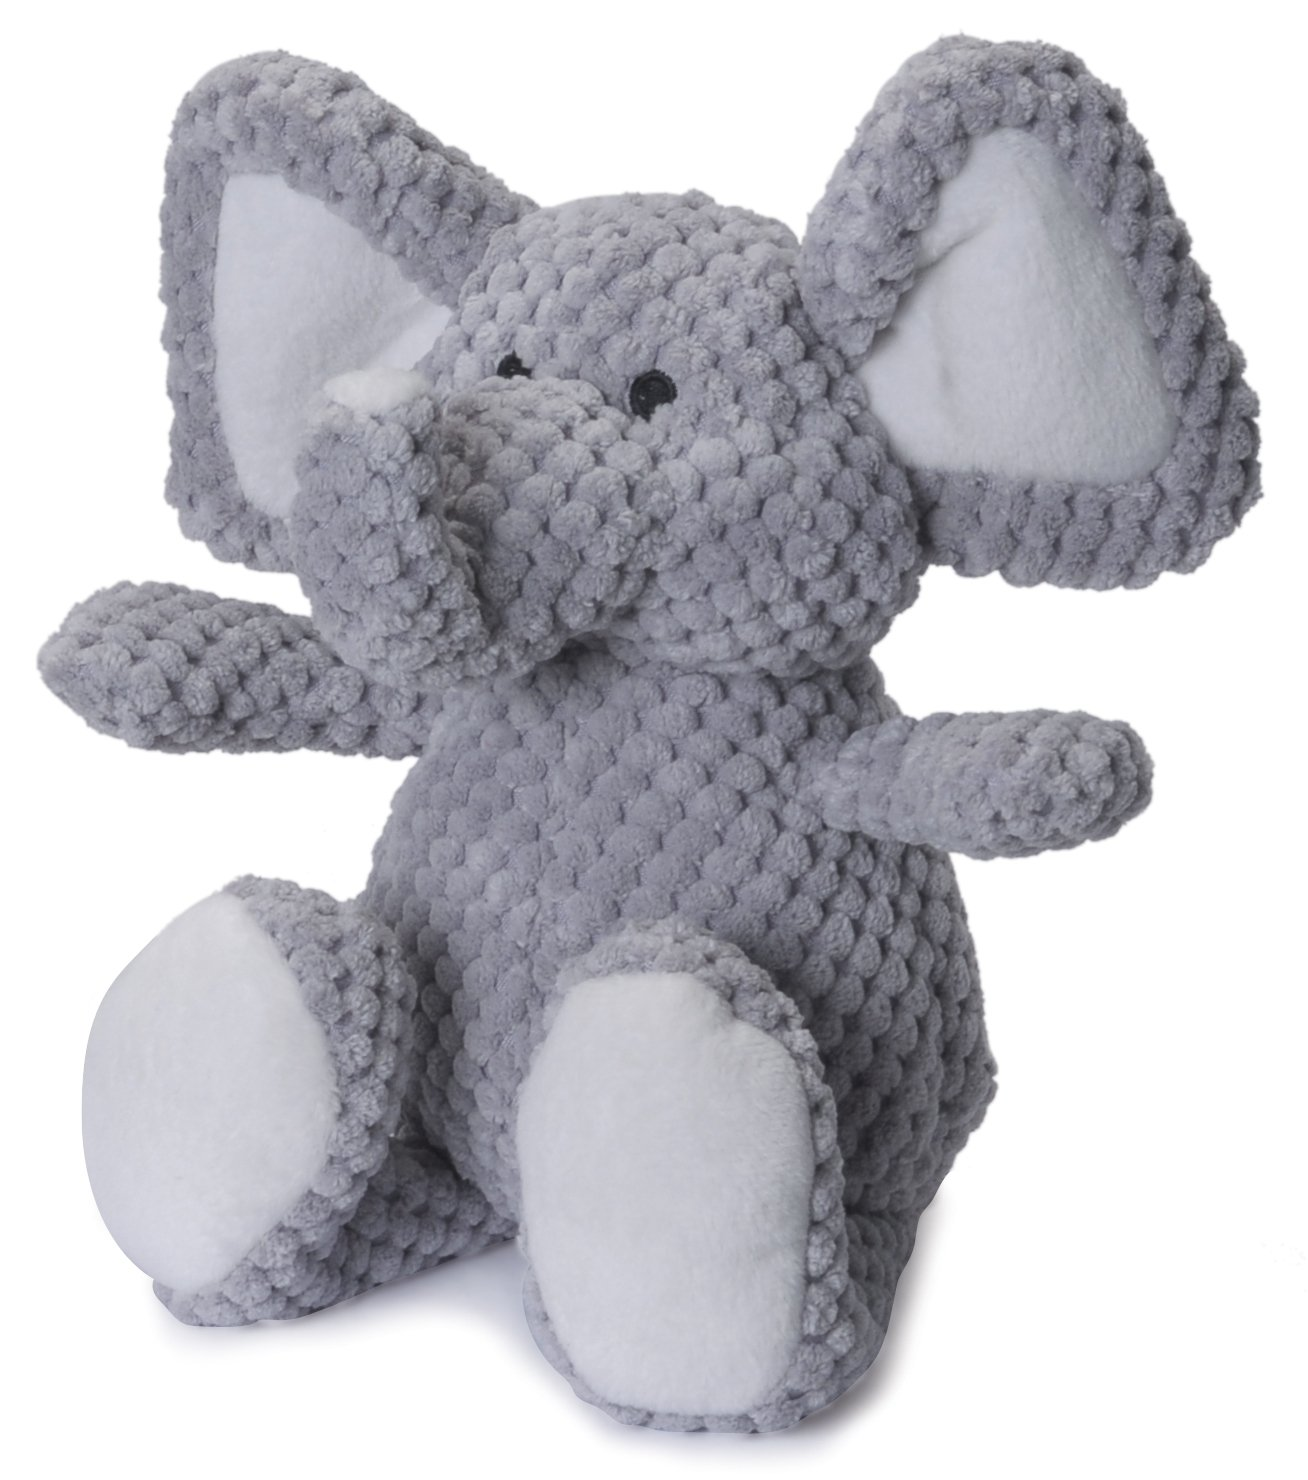 Pet Supplies Pet Chew Toys goDog Checkers Elephant With Chew